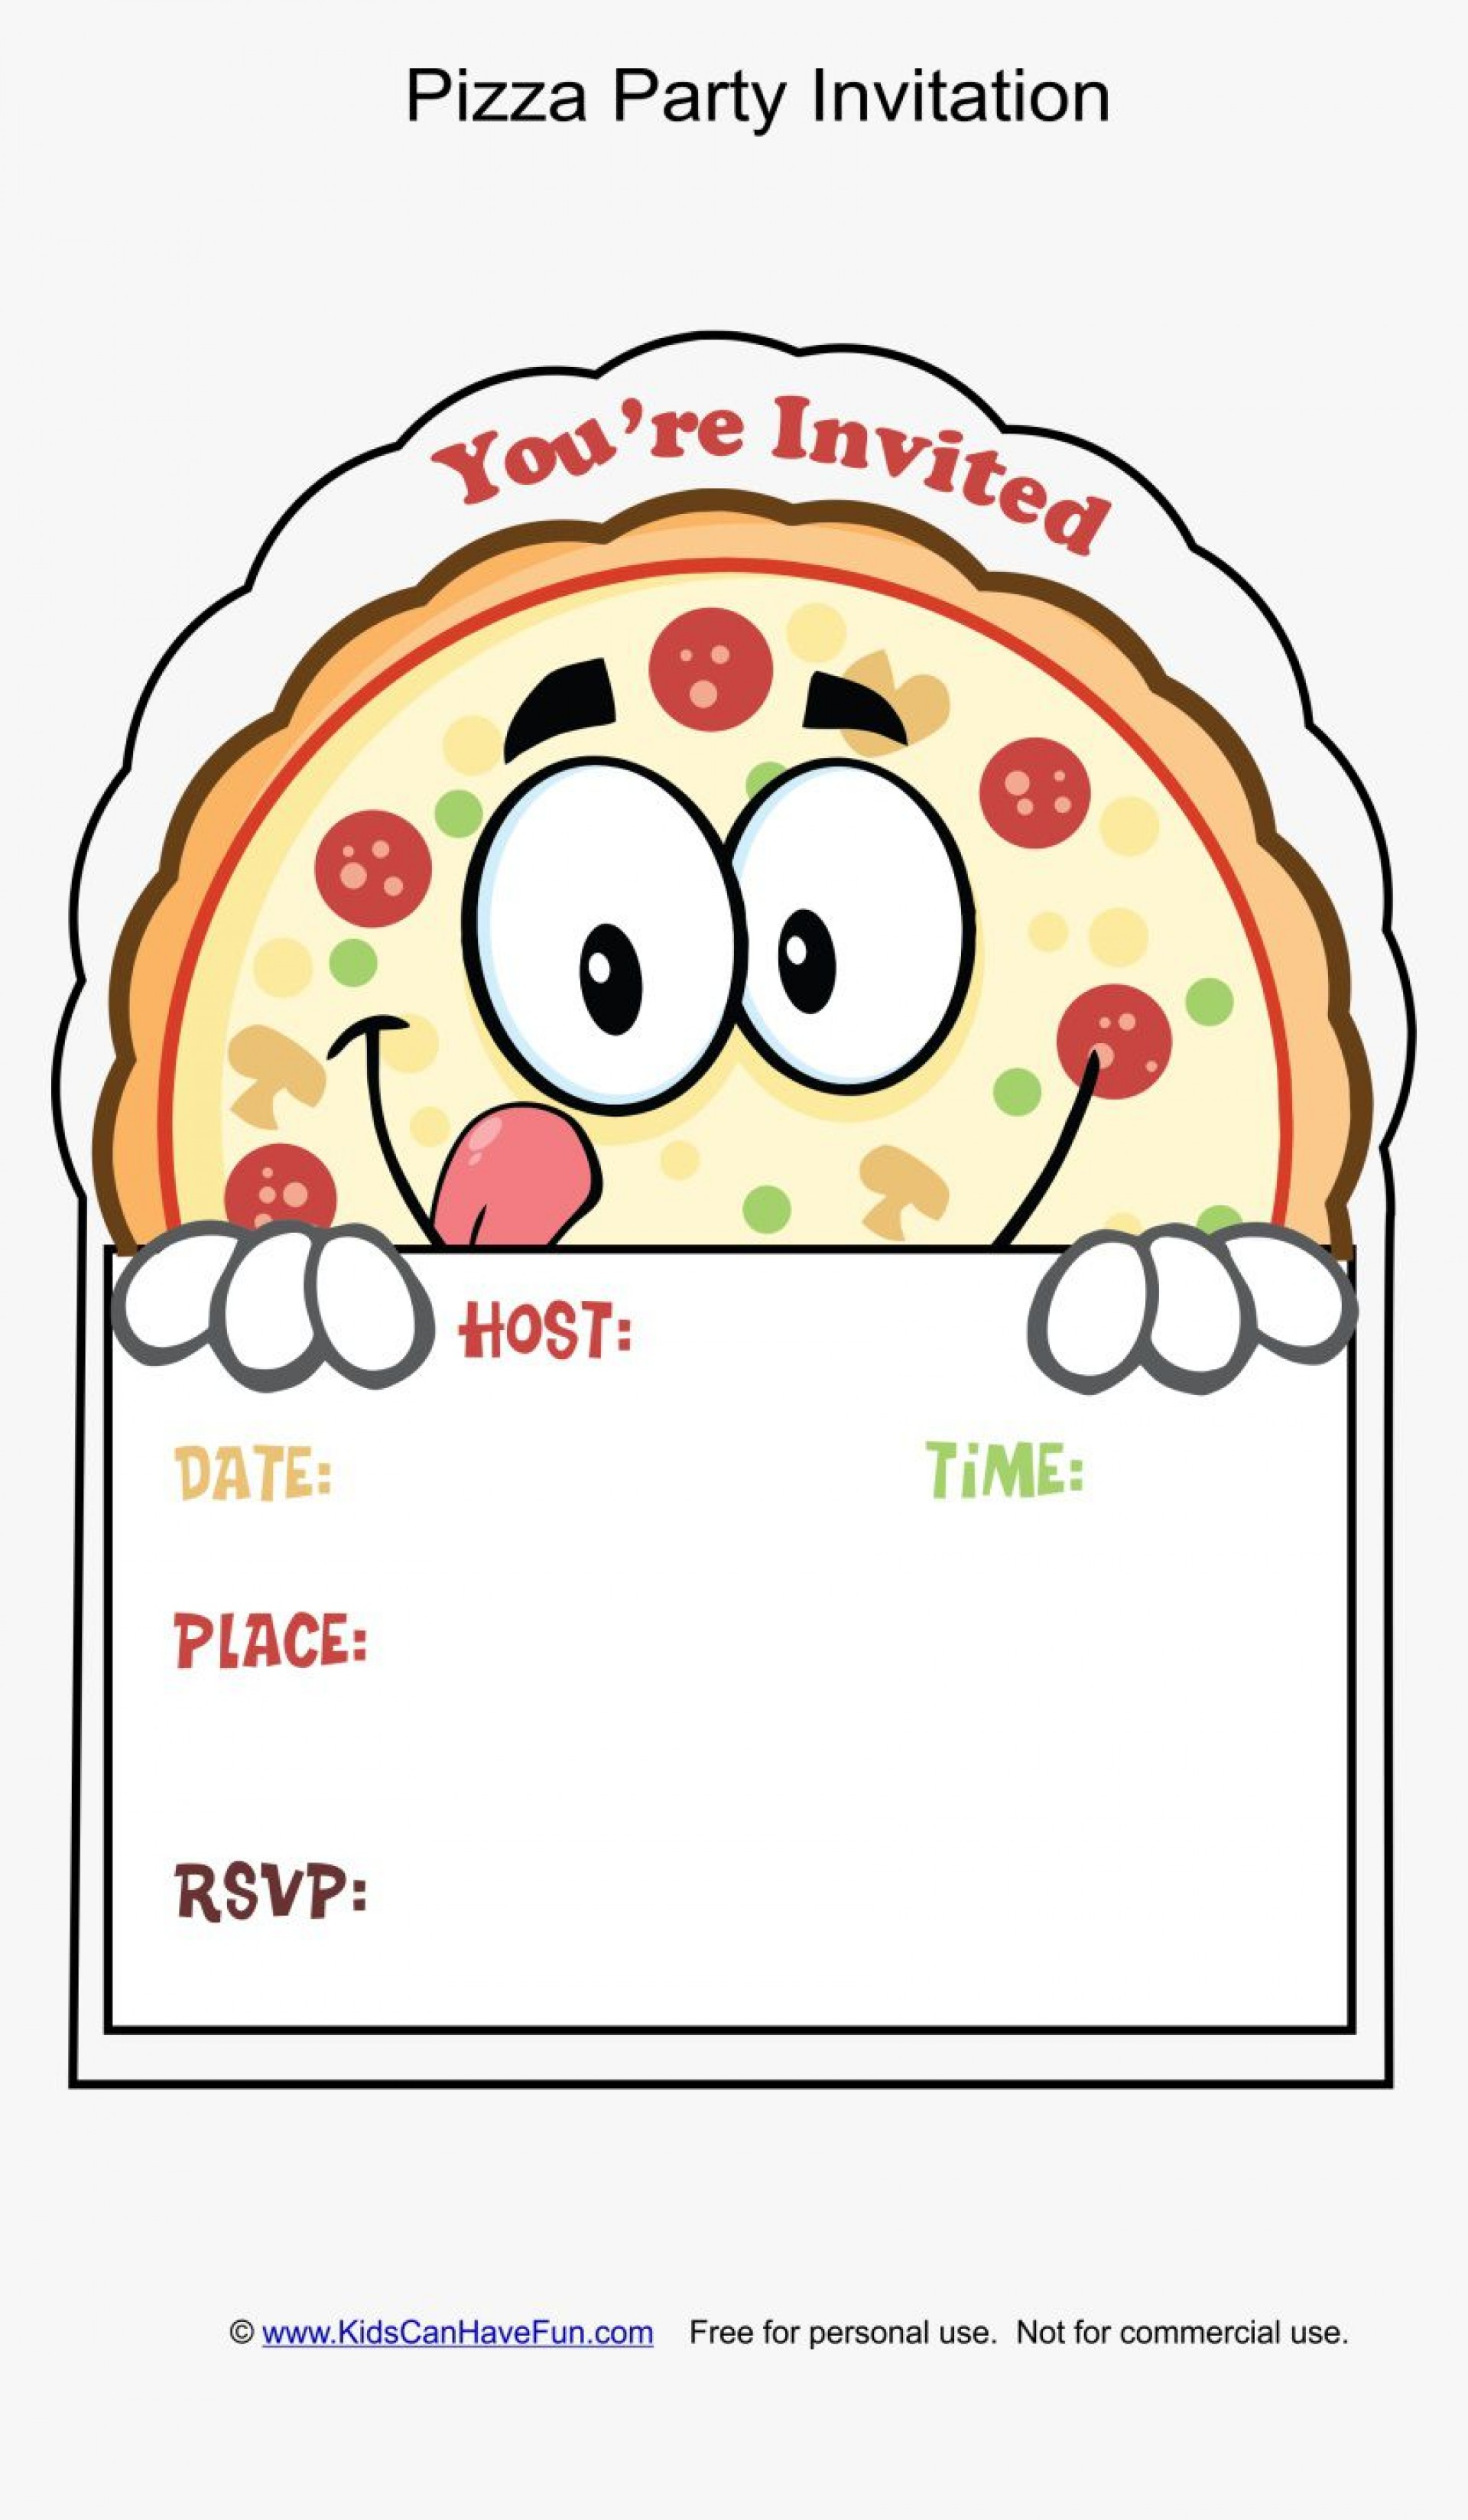 002 Wonderful Pizza Party Invitation Template Free Example  Printable1920